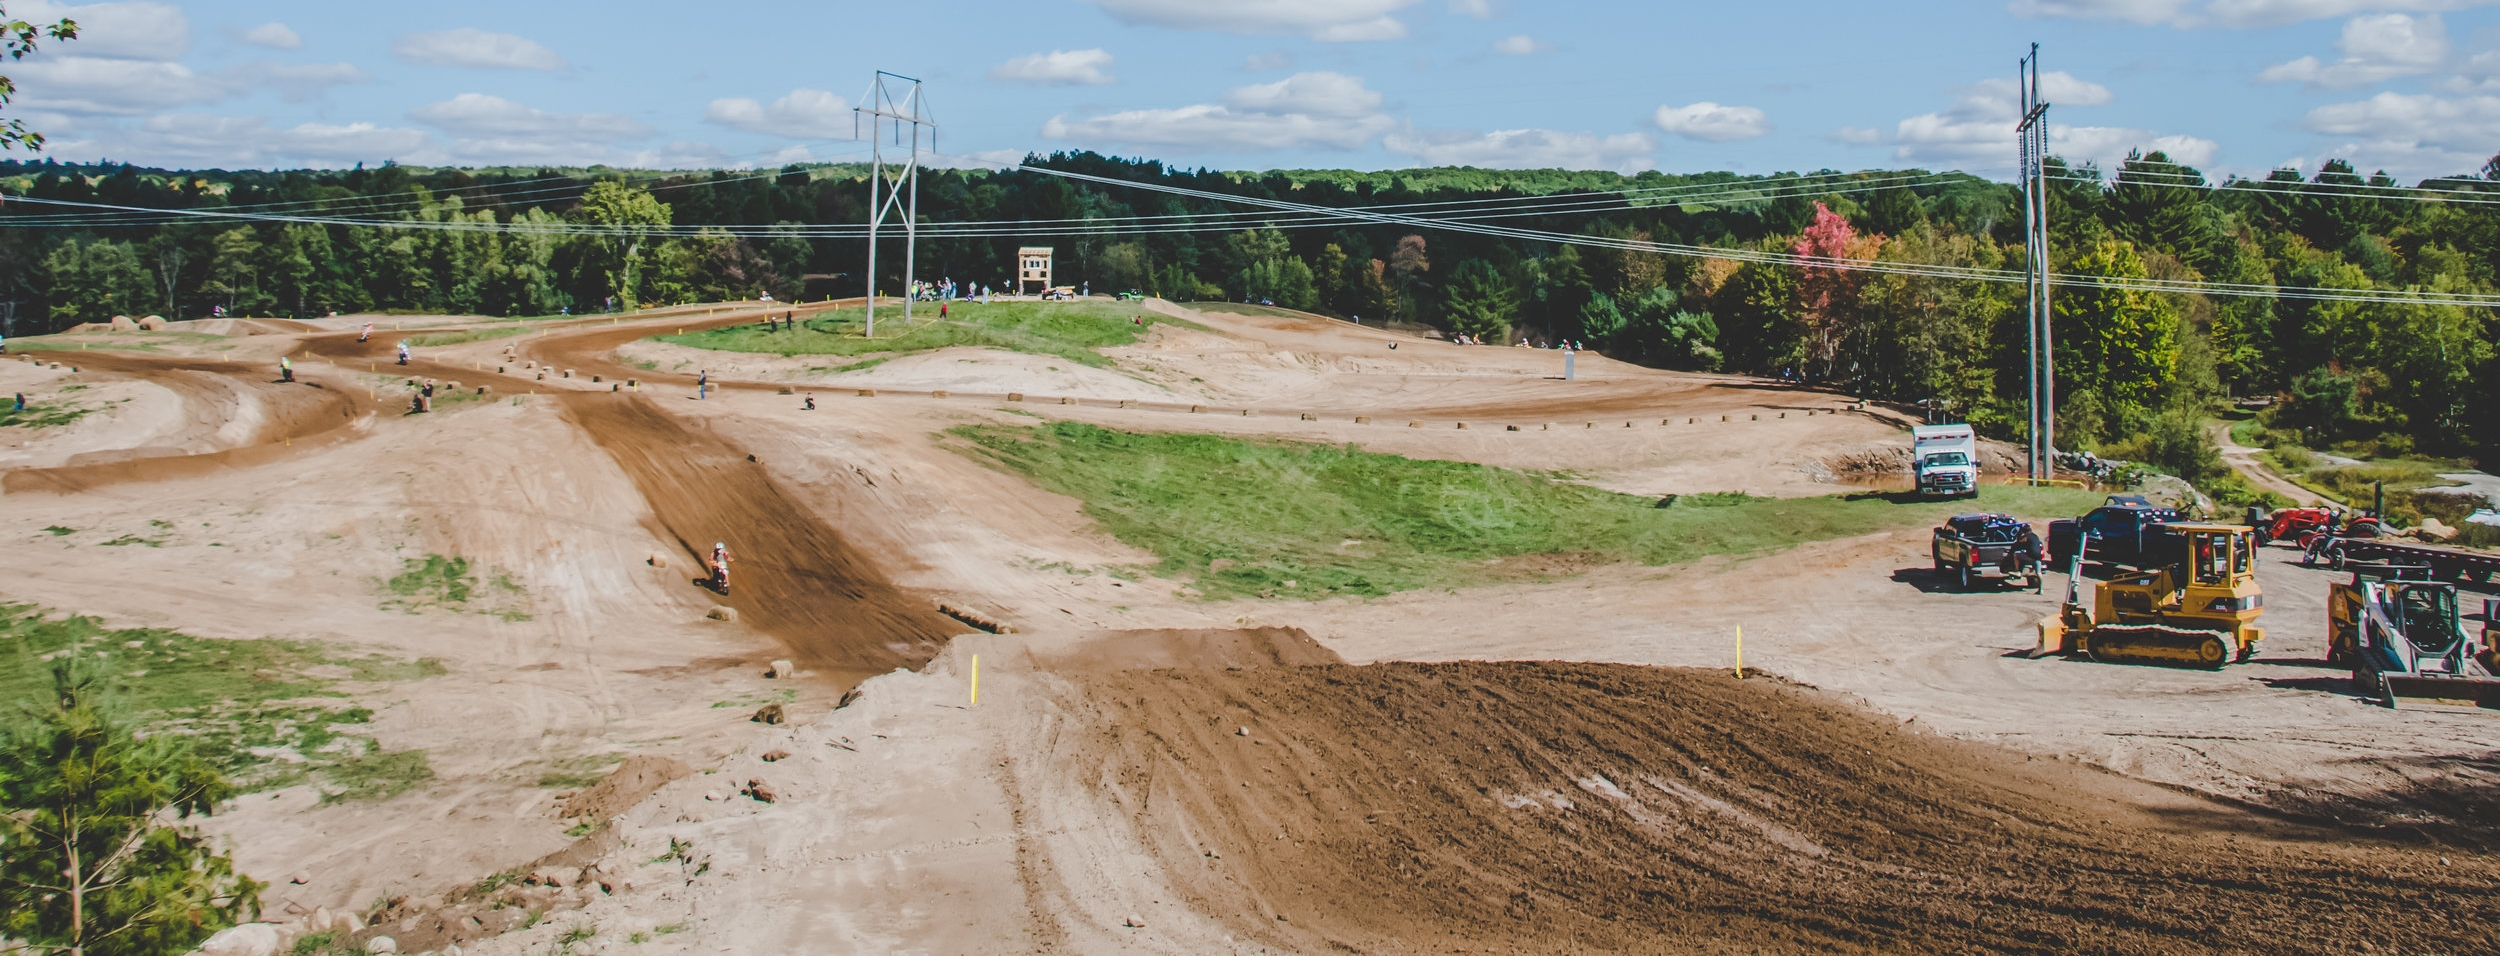 """High Voltage Hills is a family owned and operated track in the upstate New York region. We are located just south of the tug-hill plateau. We opened in the fall of 2016, with the 2017 season as our first racing season. We are part of AMA and C.N.Y.M.R.A District 3. Our track is making a name for itself due to the Loamy sand-soil conditions, high speed, and the natural flowing jumps and hills. There is plenty of parking in our """"pit"""" area, which is a 15 acre field. There are plenty of nearby lodges and hotels for rooms as well. We are located 5 miles from the town of brantingham, which has a few bars for food and some lodging as well. Being a new track we are trying our best to make racing and riding fun for everyone! We hope to see everyone at High Voltage Hills."""